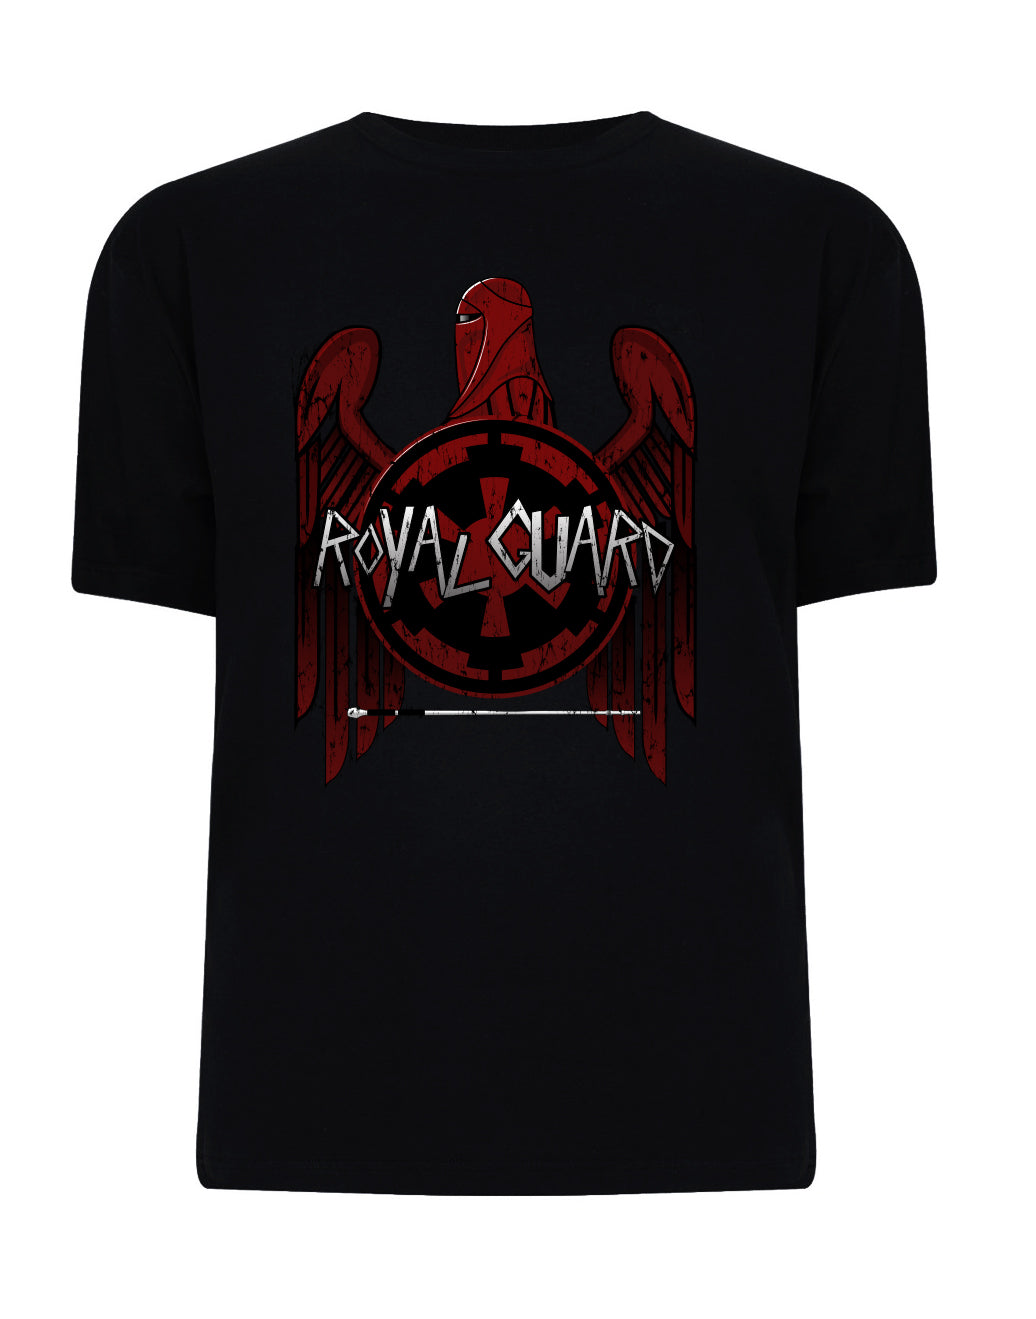 Royal Guard Slayer Shirt